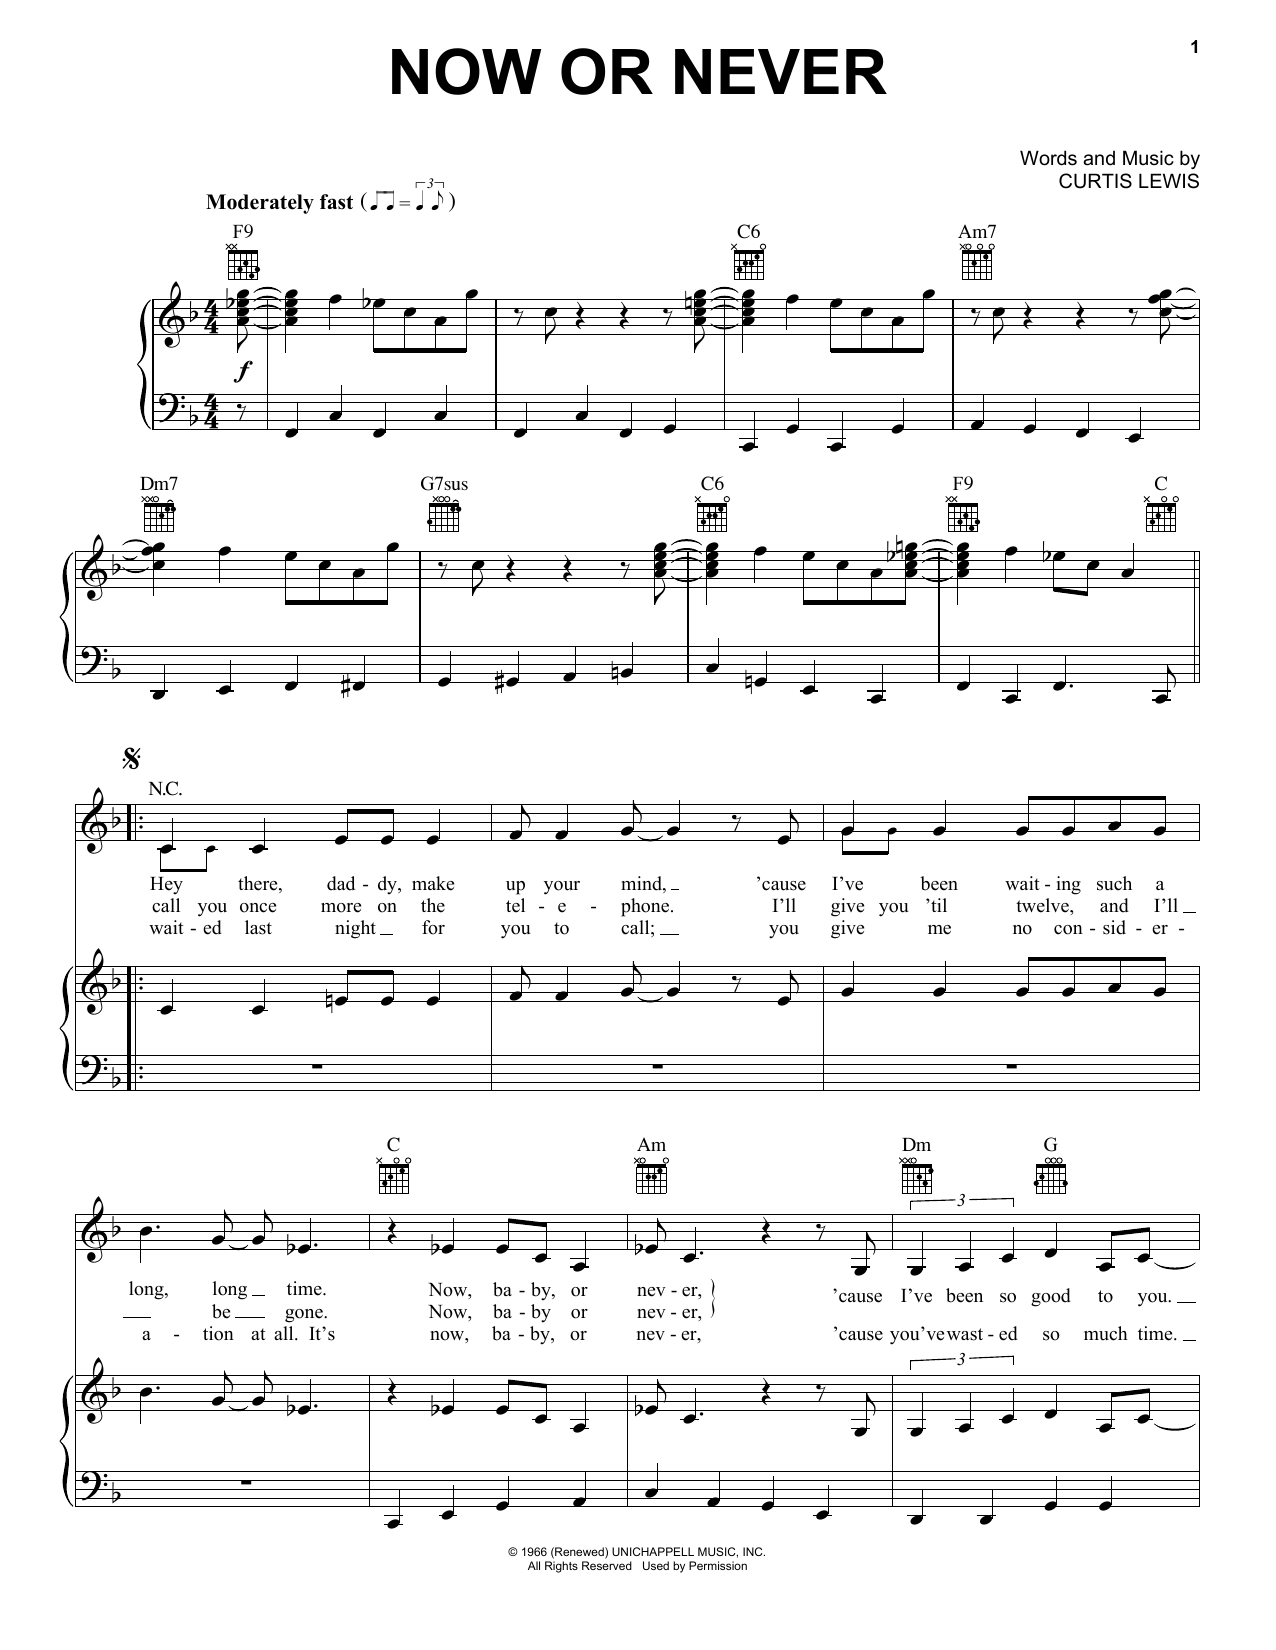 Billie Holiday Now Or Never Sheet Music Notes Chords Printable